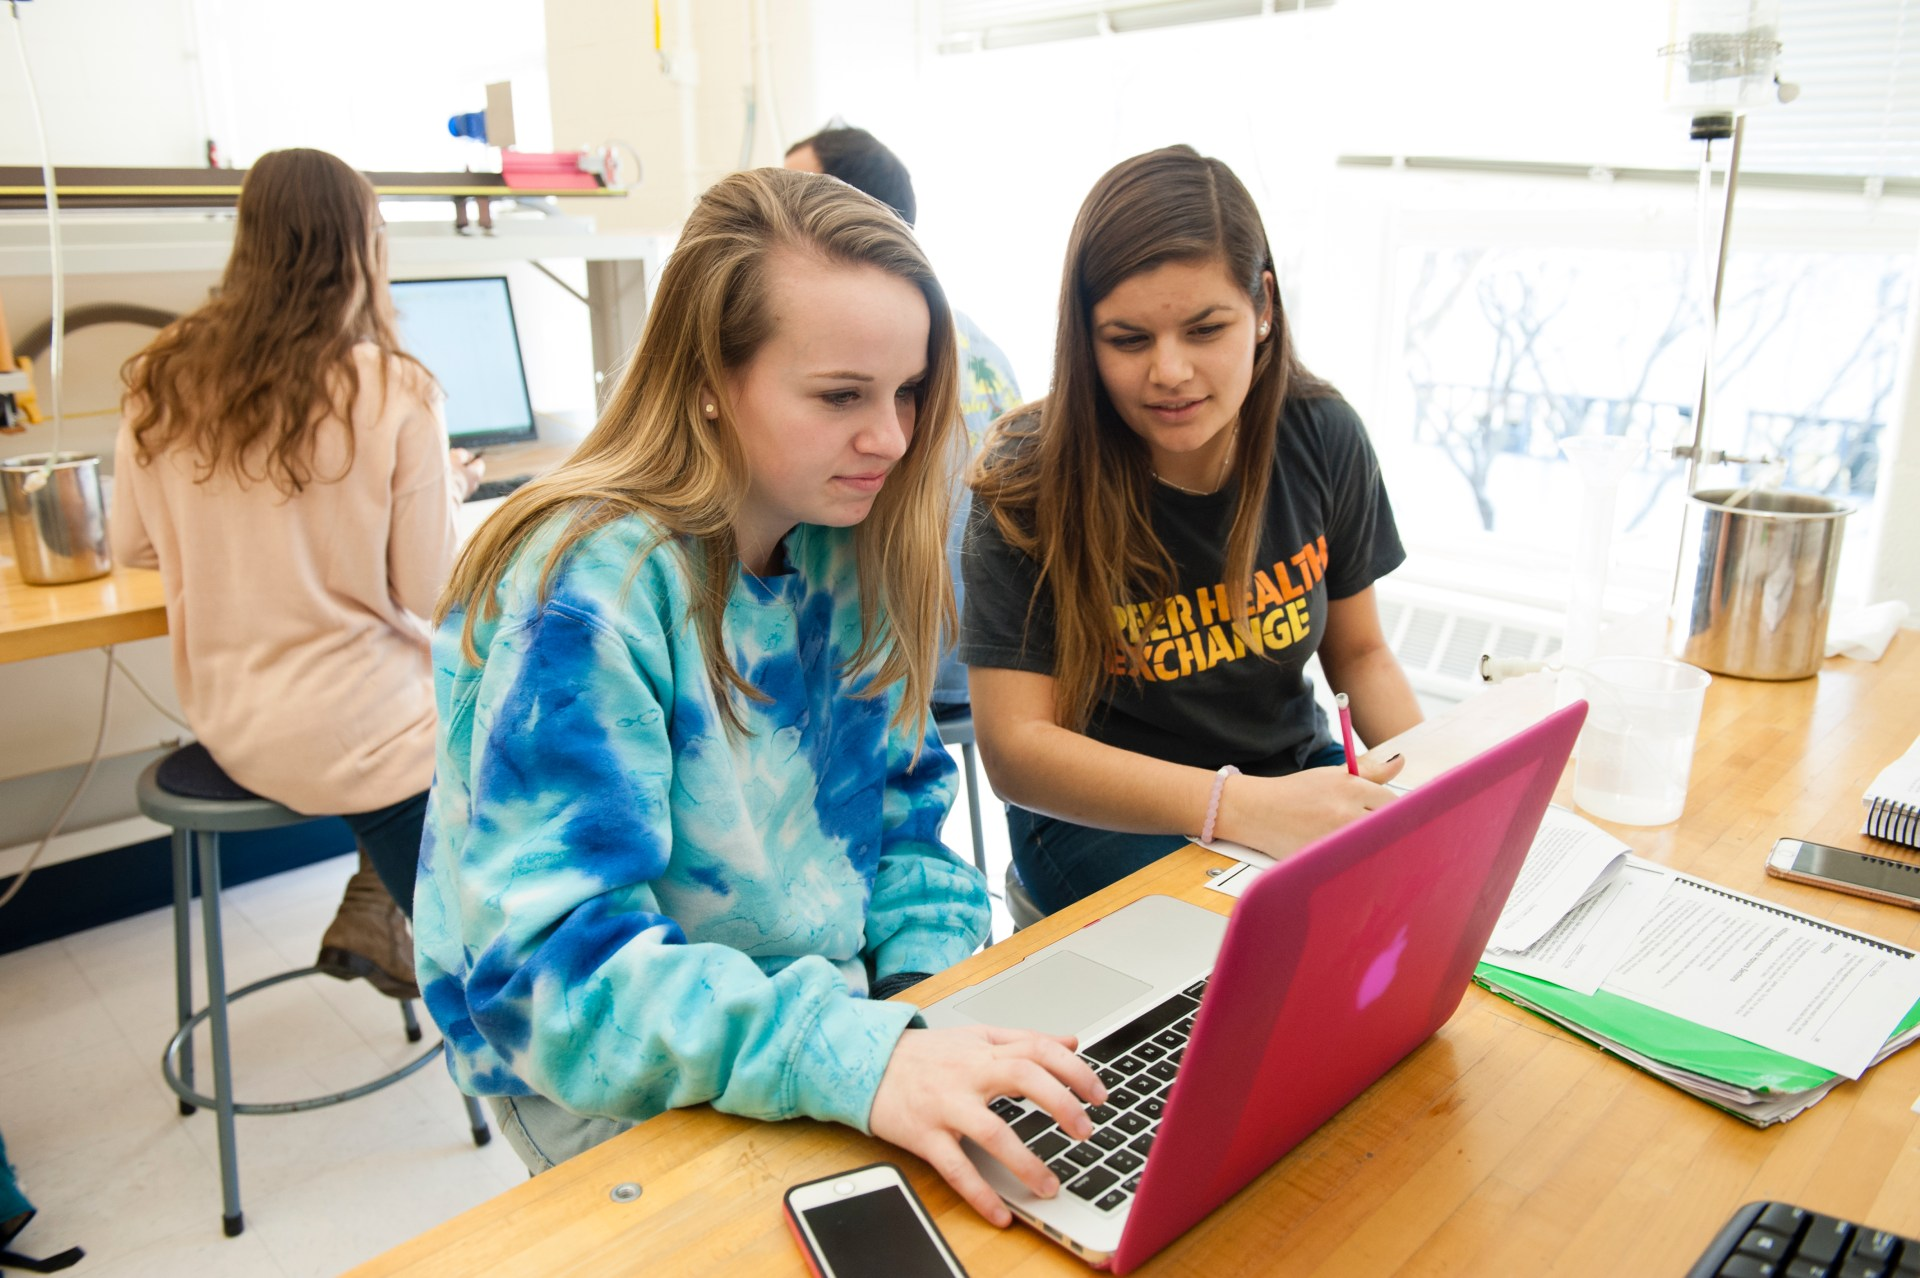 Two female students work on a physics lab. They are both looking at the screen of a laptop. Another group of students can be seen in the background working on the physics lab.